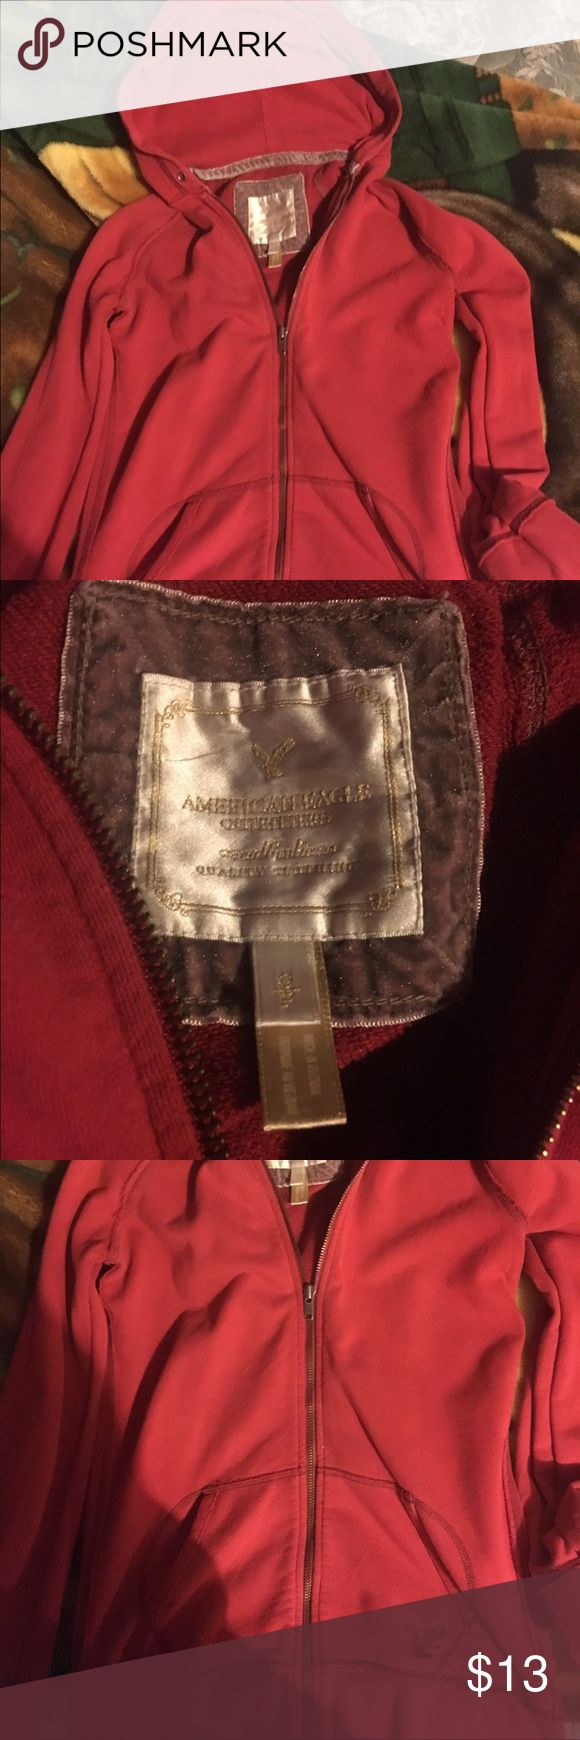 NWOT American eagle hoodie. String is missing. Never worn! Can also fit a medium! American Eagle Outfitters Tops Sweatshirts & Hoodies